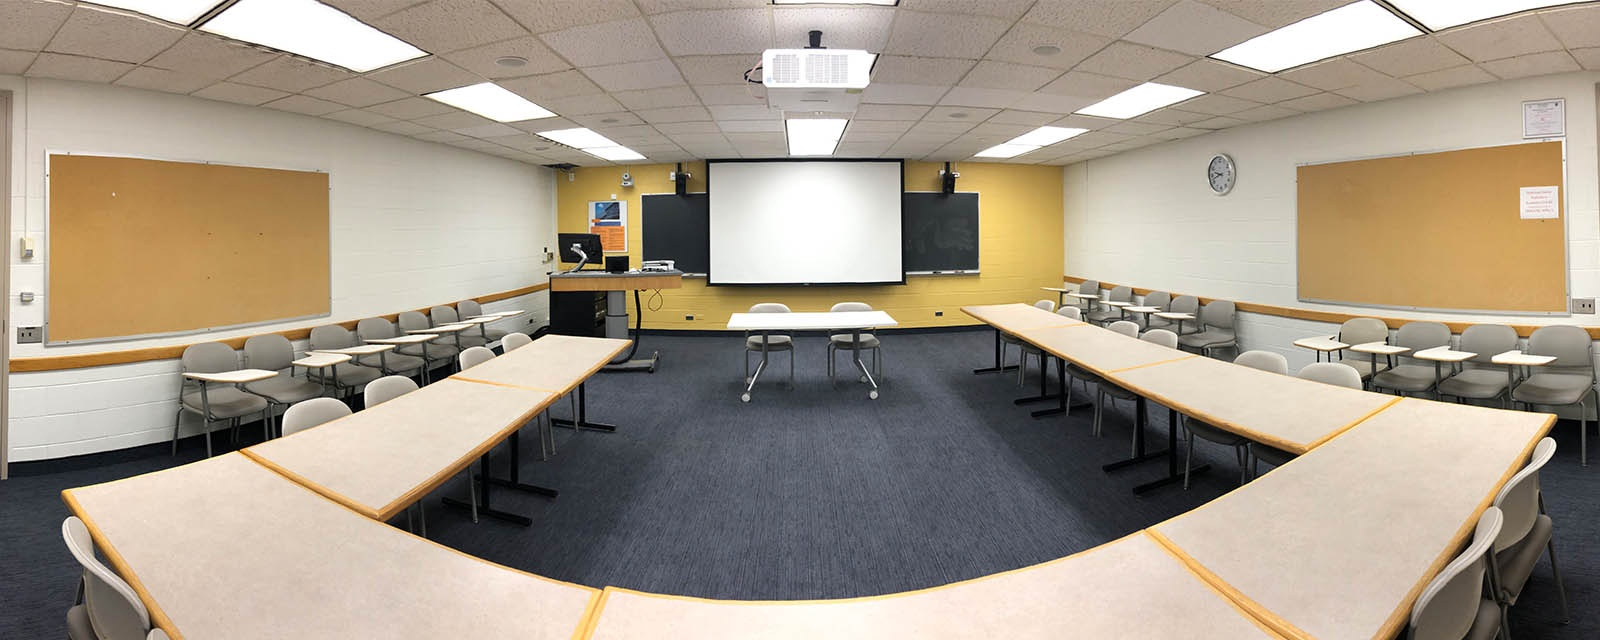 Panorama Newhouse 2 room 340 from back of room to front of room, movable chairs, teaching station front left